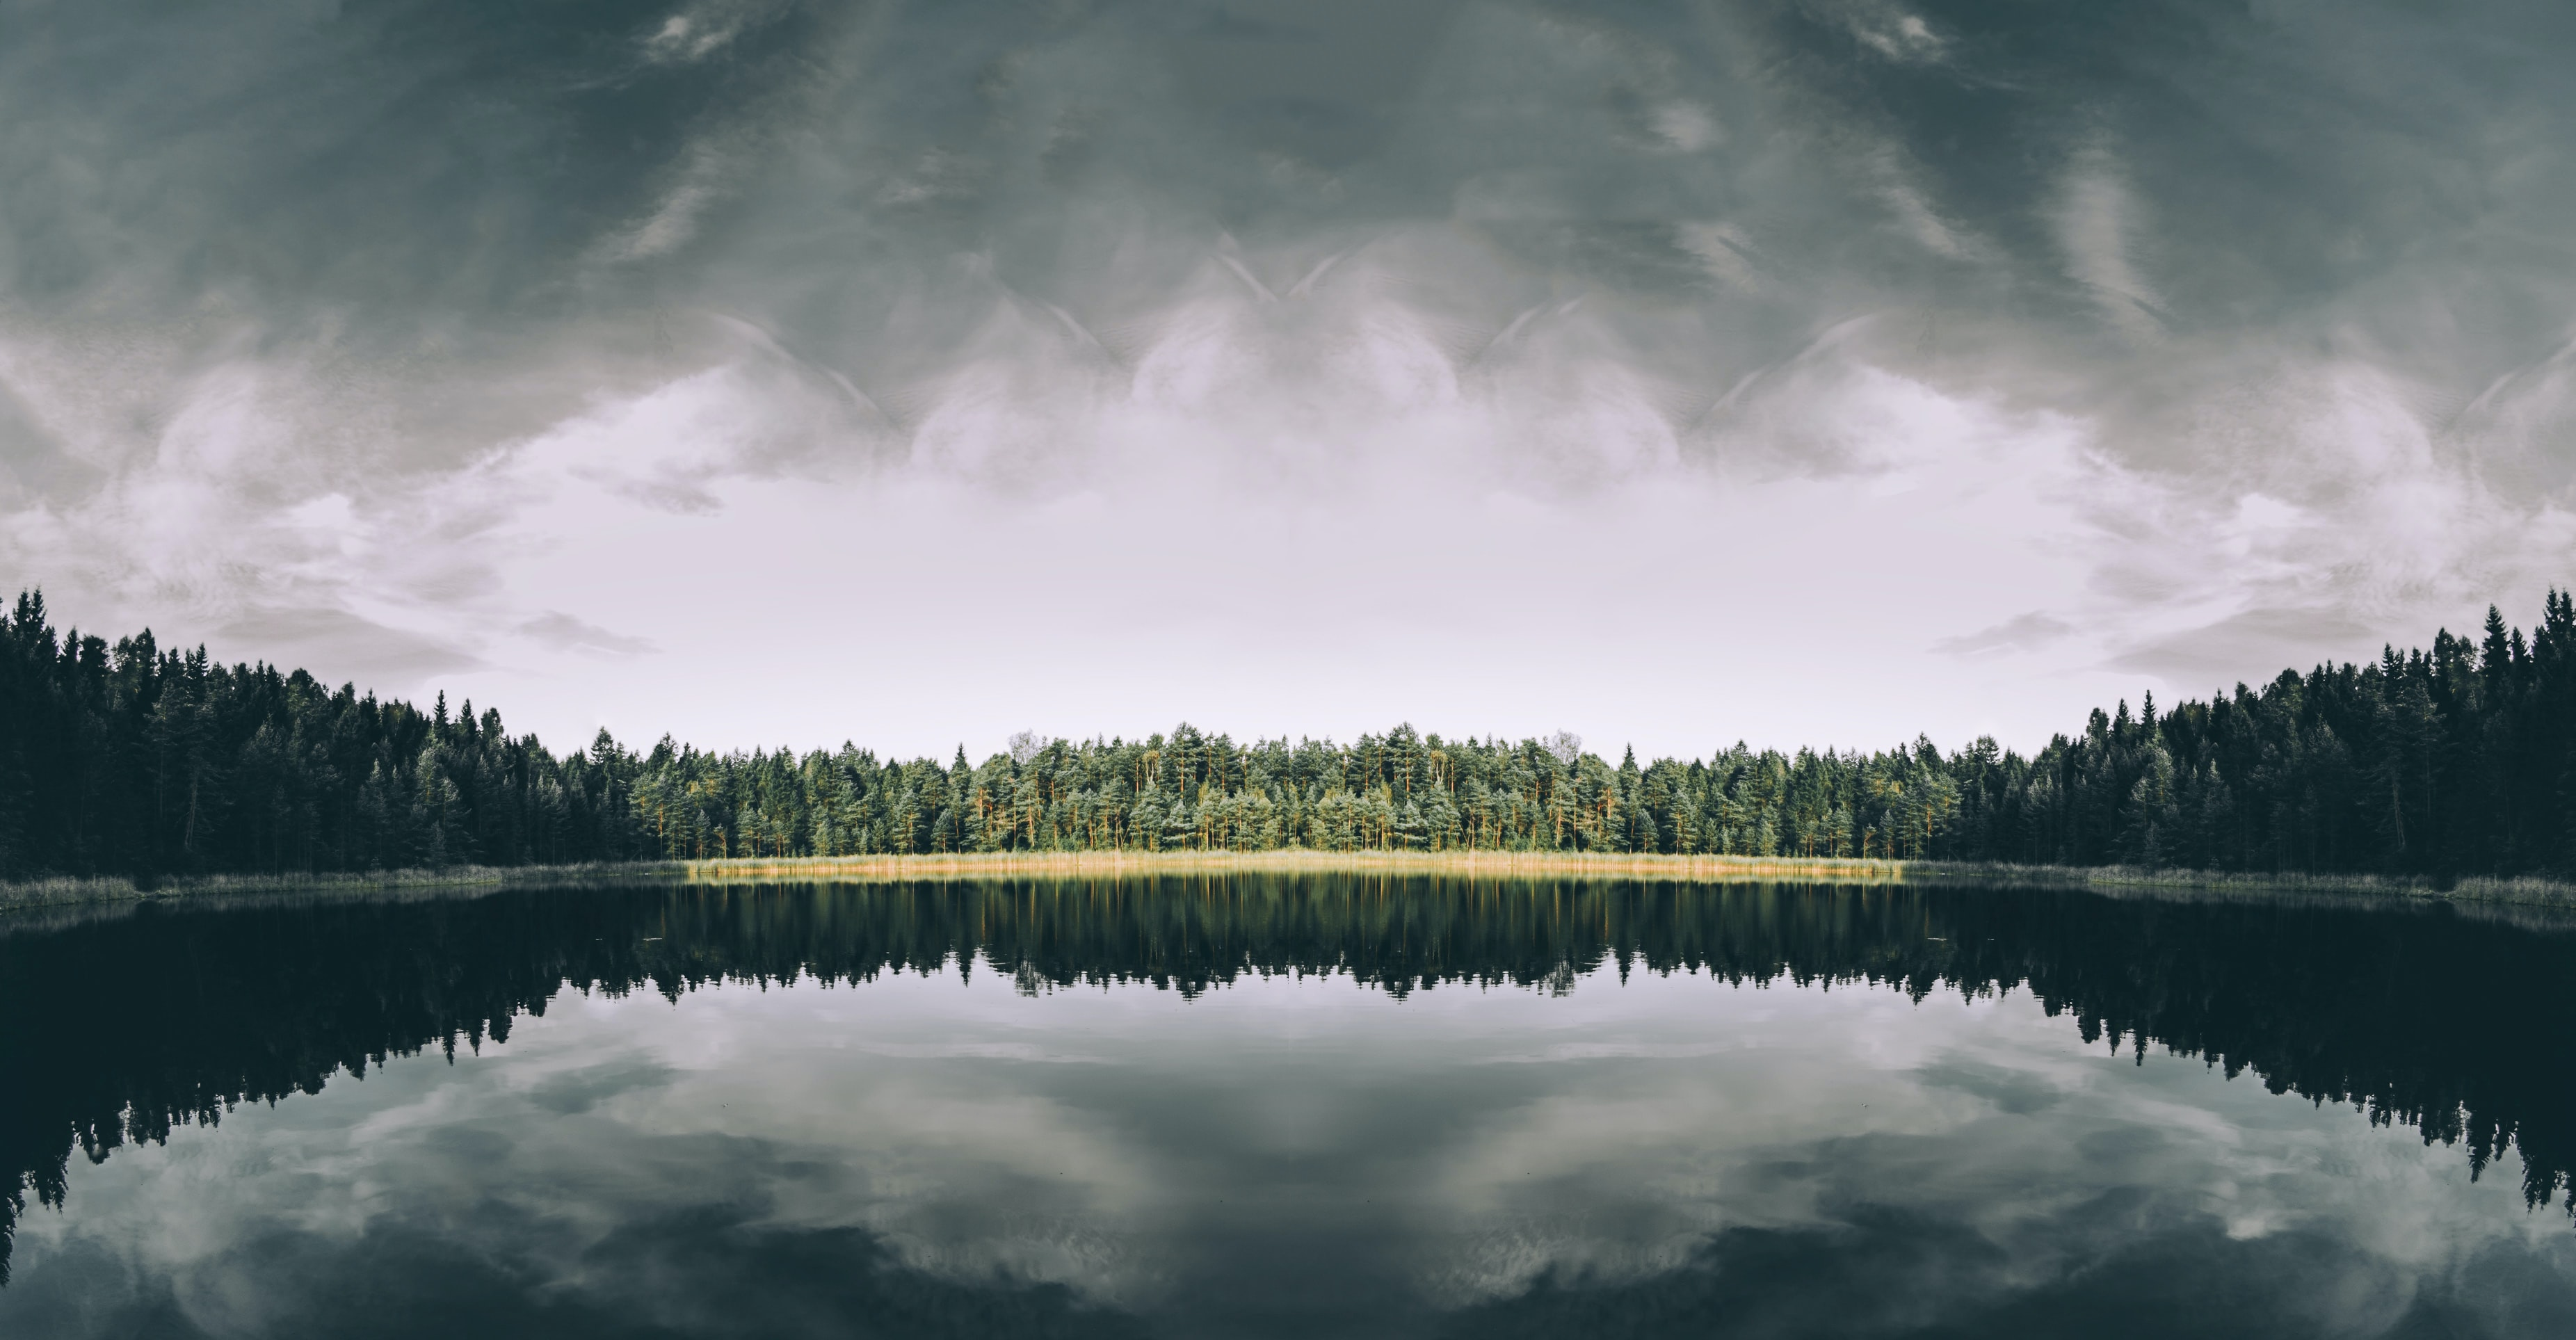 A still lake surrounded by coniferous trees in Estonia on a cloudy day